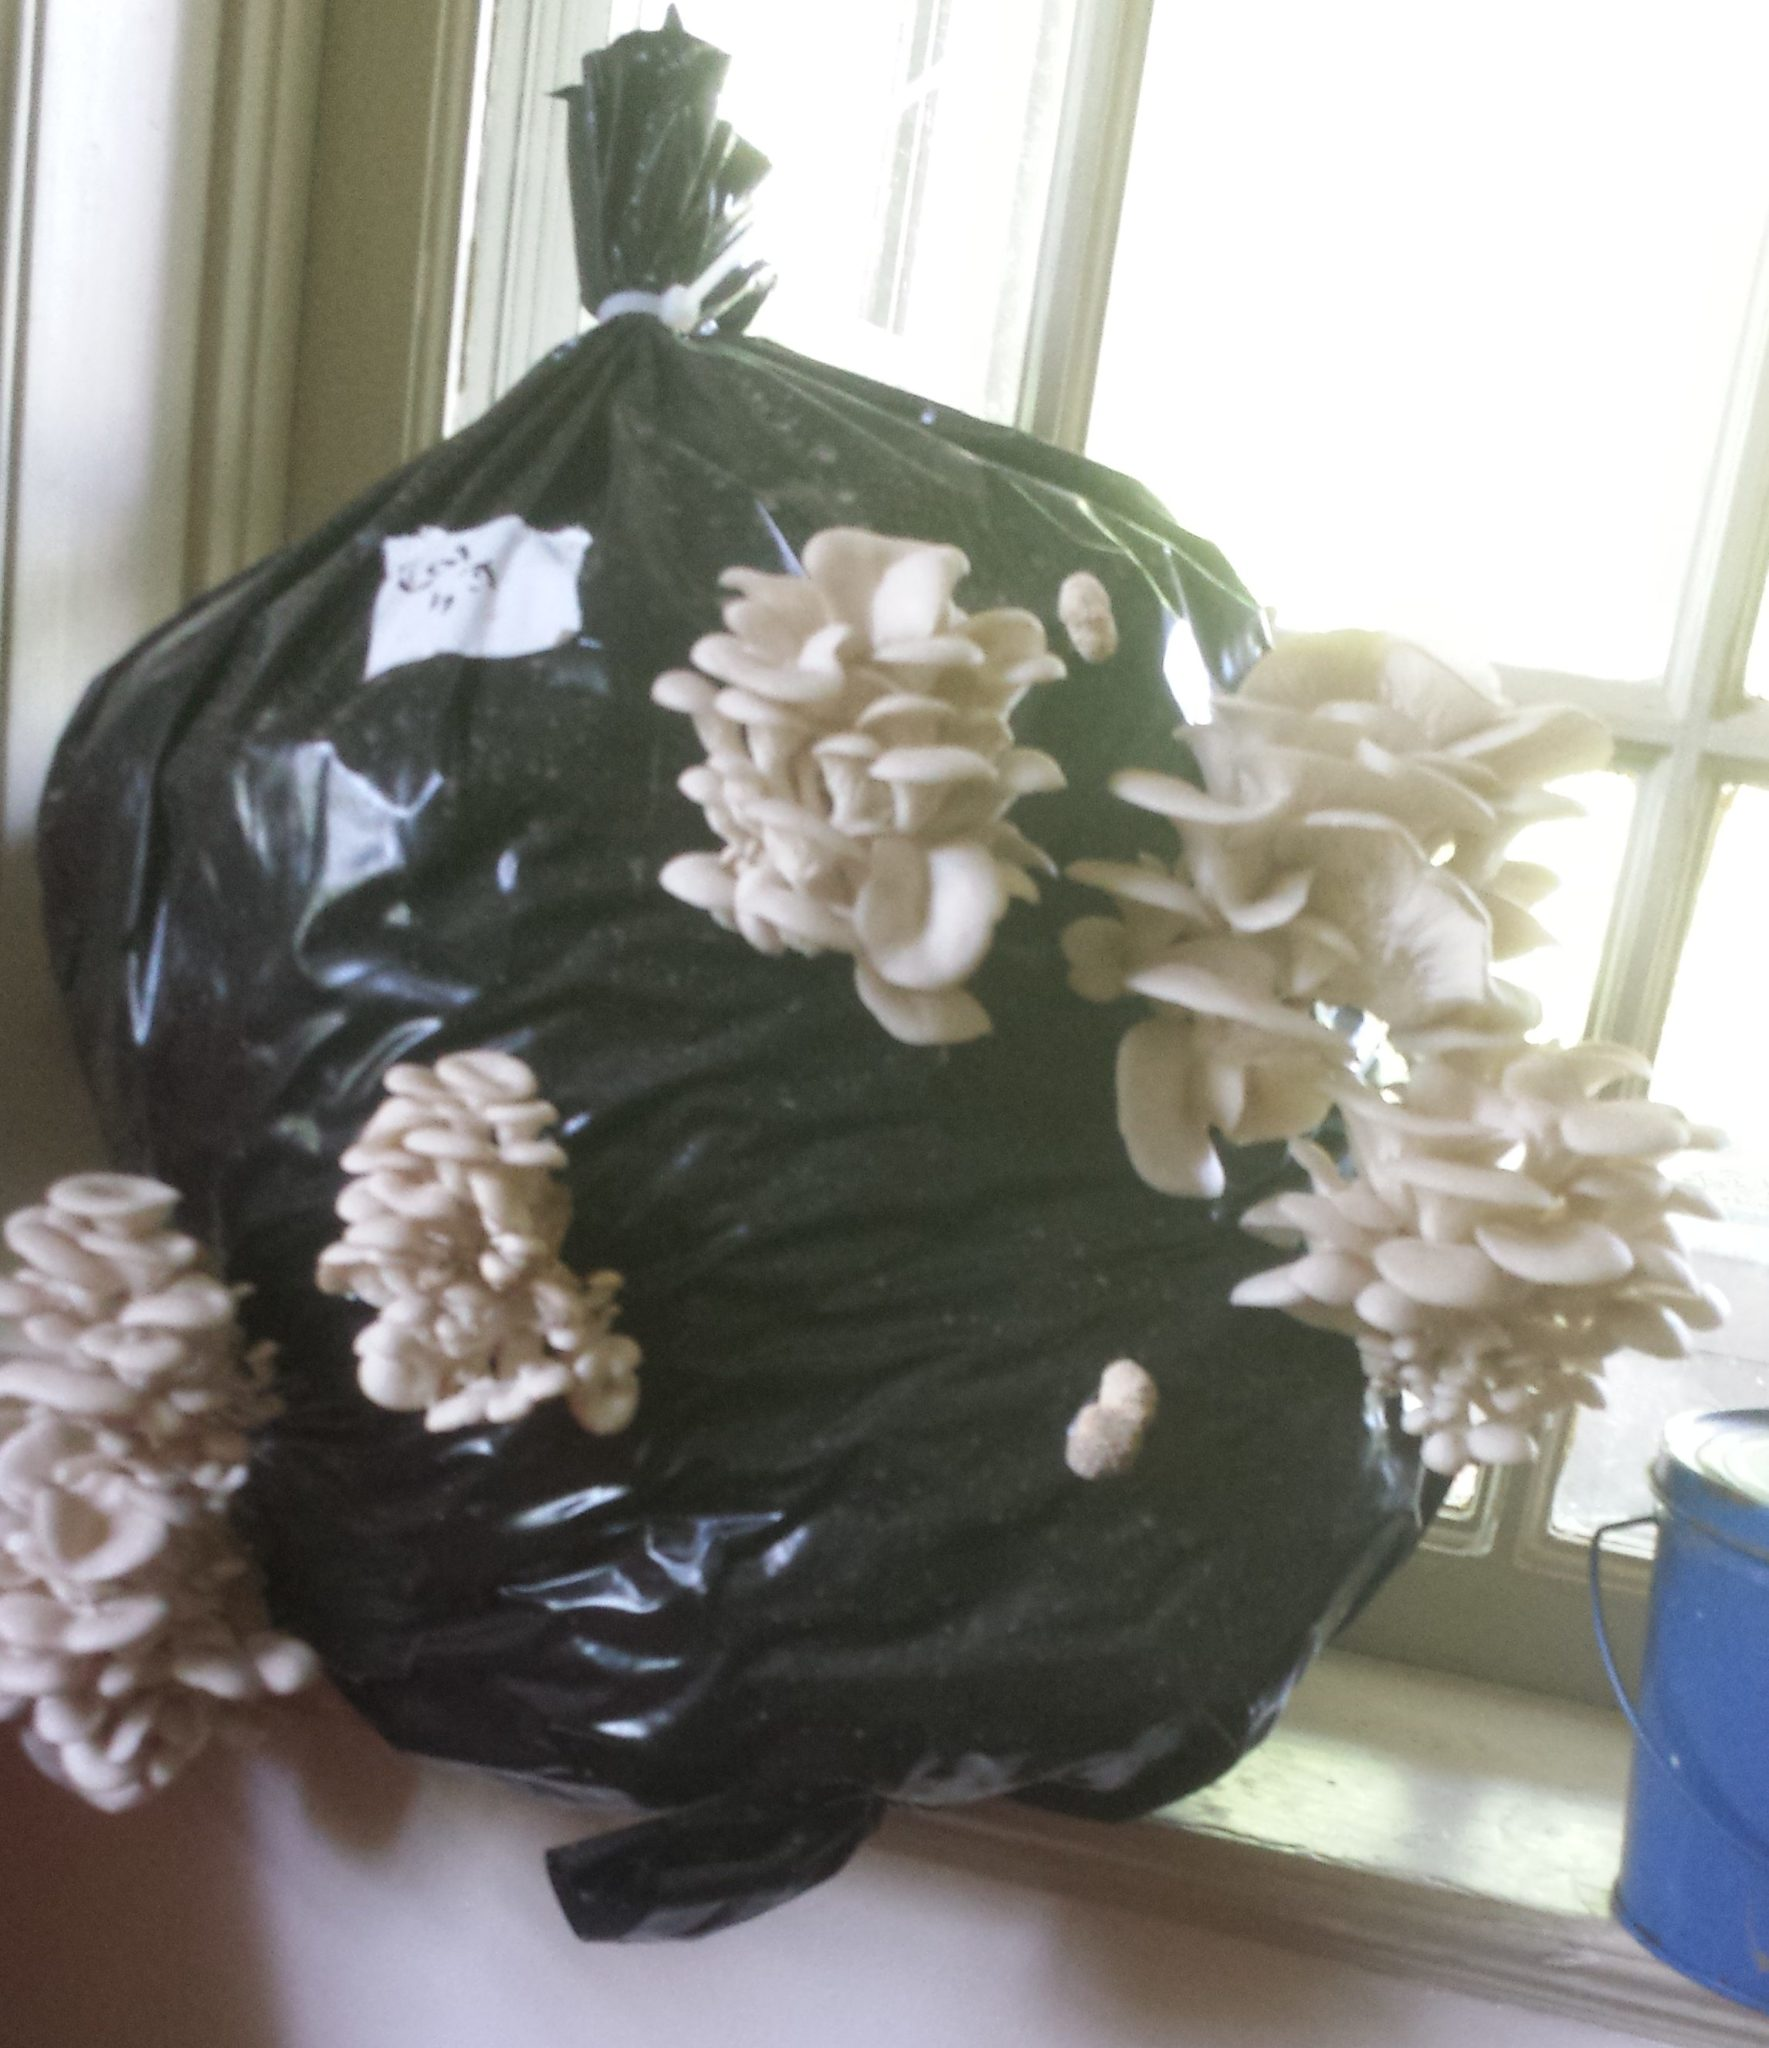 How to grow mushrooms at hone: Growing oyster mushrooms